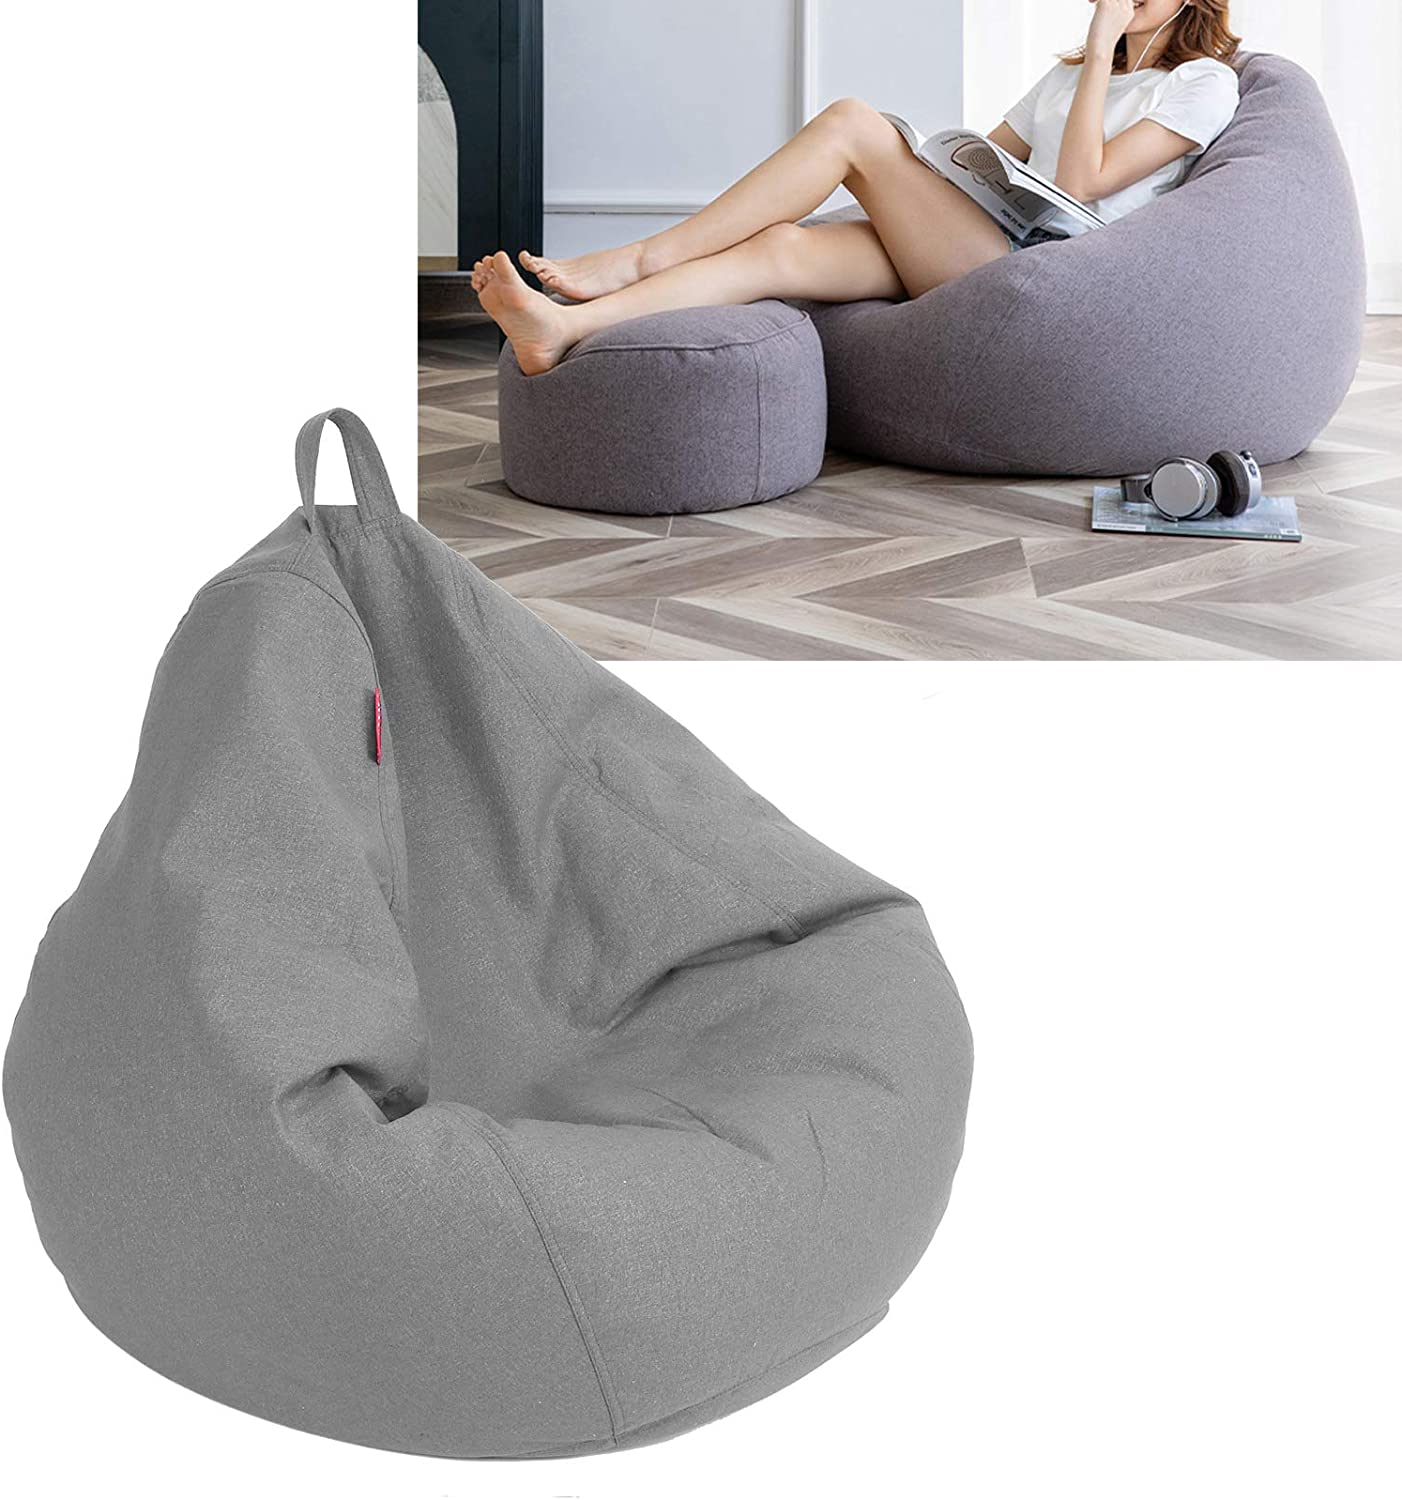 HAOX Bean Bag New product type Chair safety Super S Soft Sofa Leisure